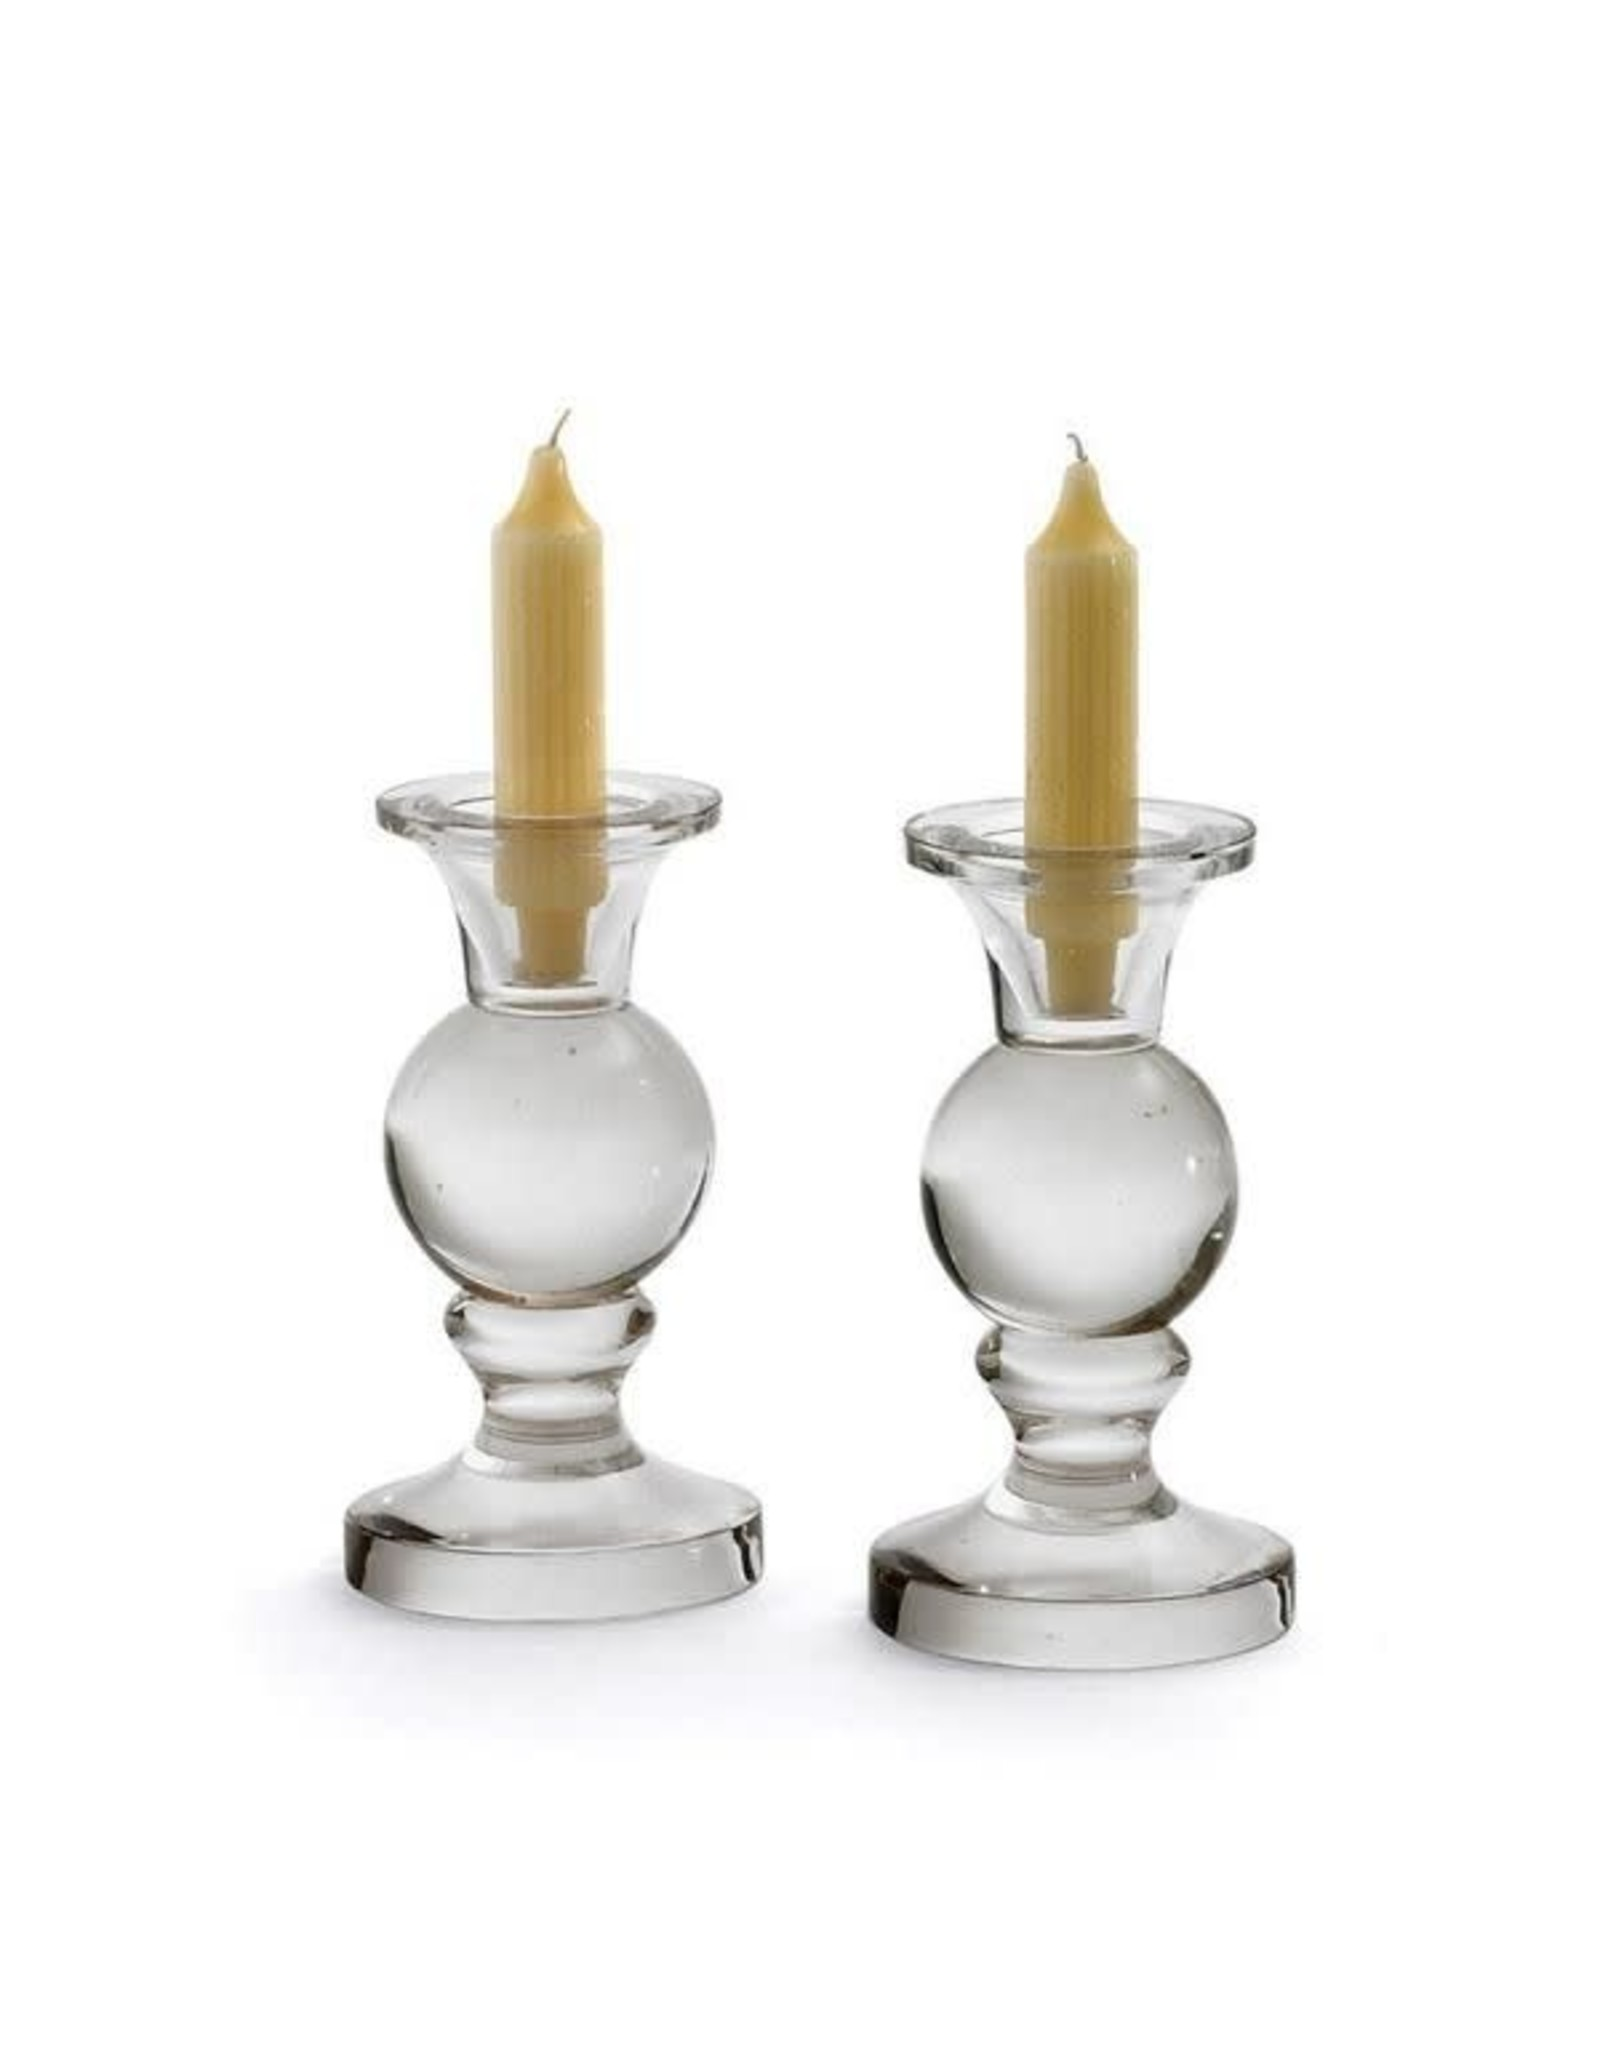 Spherical Candleholders